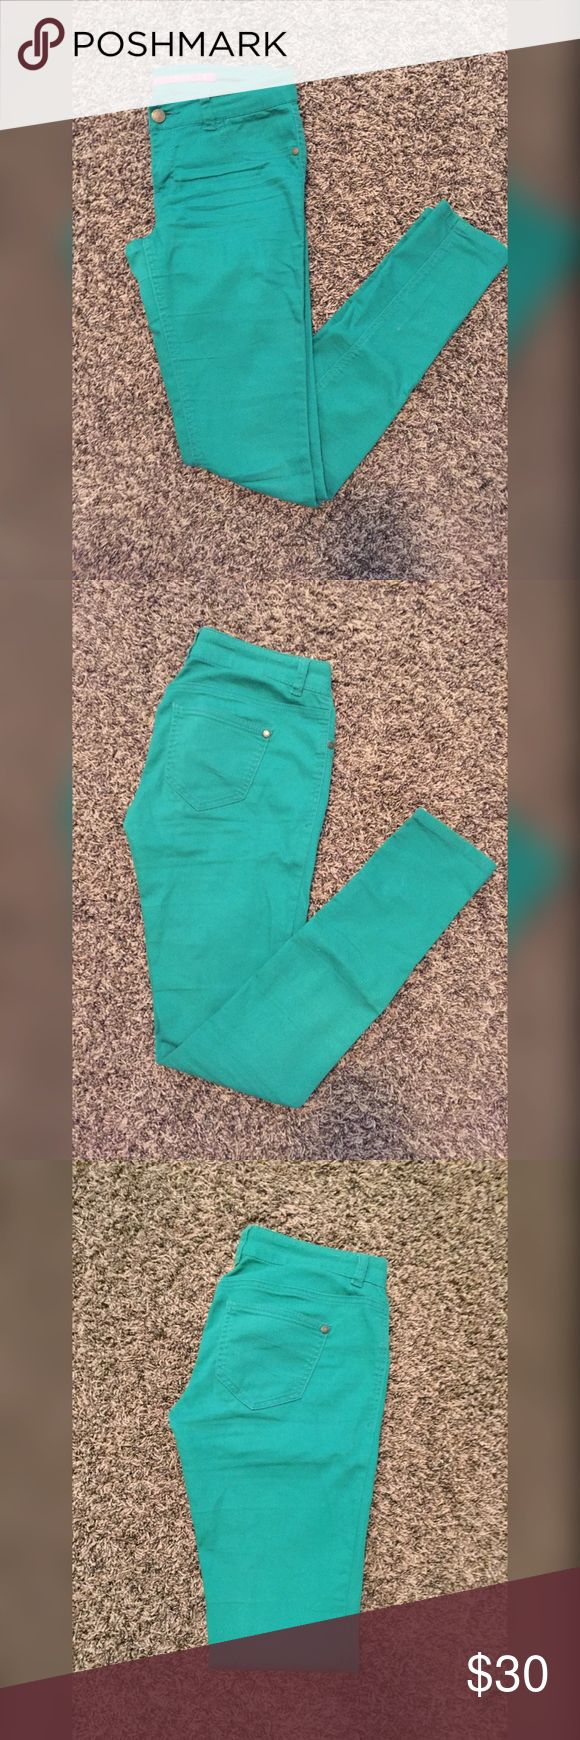 Green Teal Skinny Jeans from Tilly's These are green teal skinny jeans from Tilly's. They have two pockets on the back. They have one button & zipper on the front. These jeans are a size 3. Tilly's Jeans Skinny